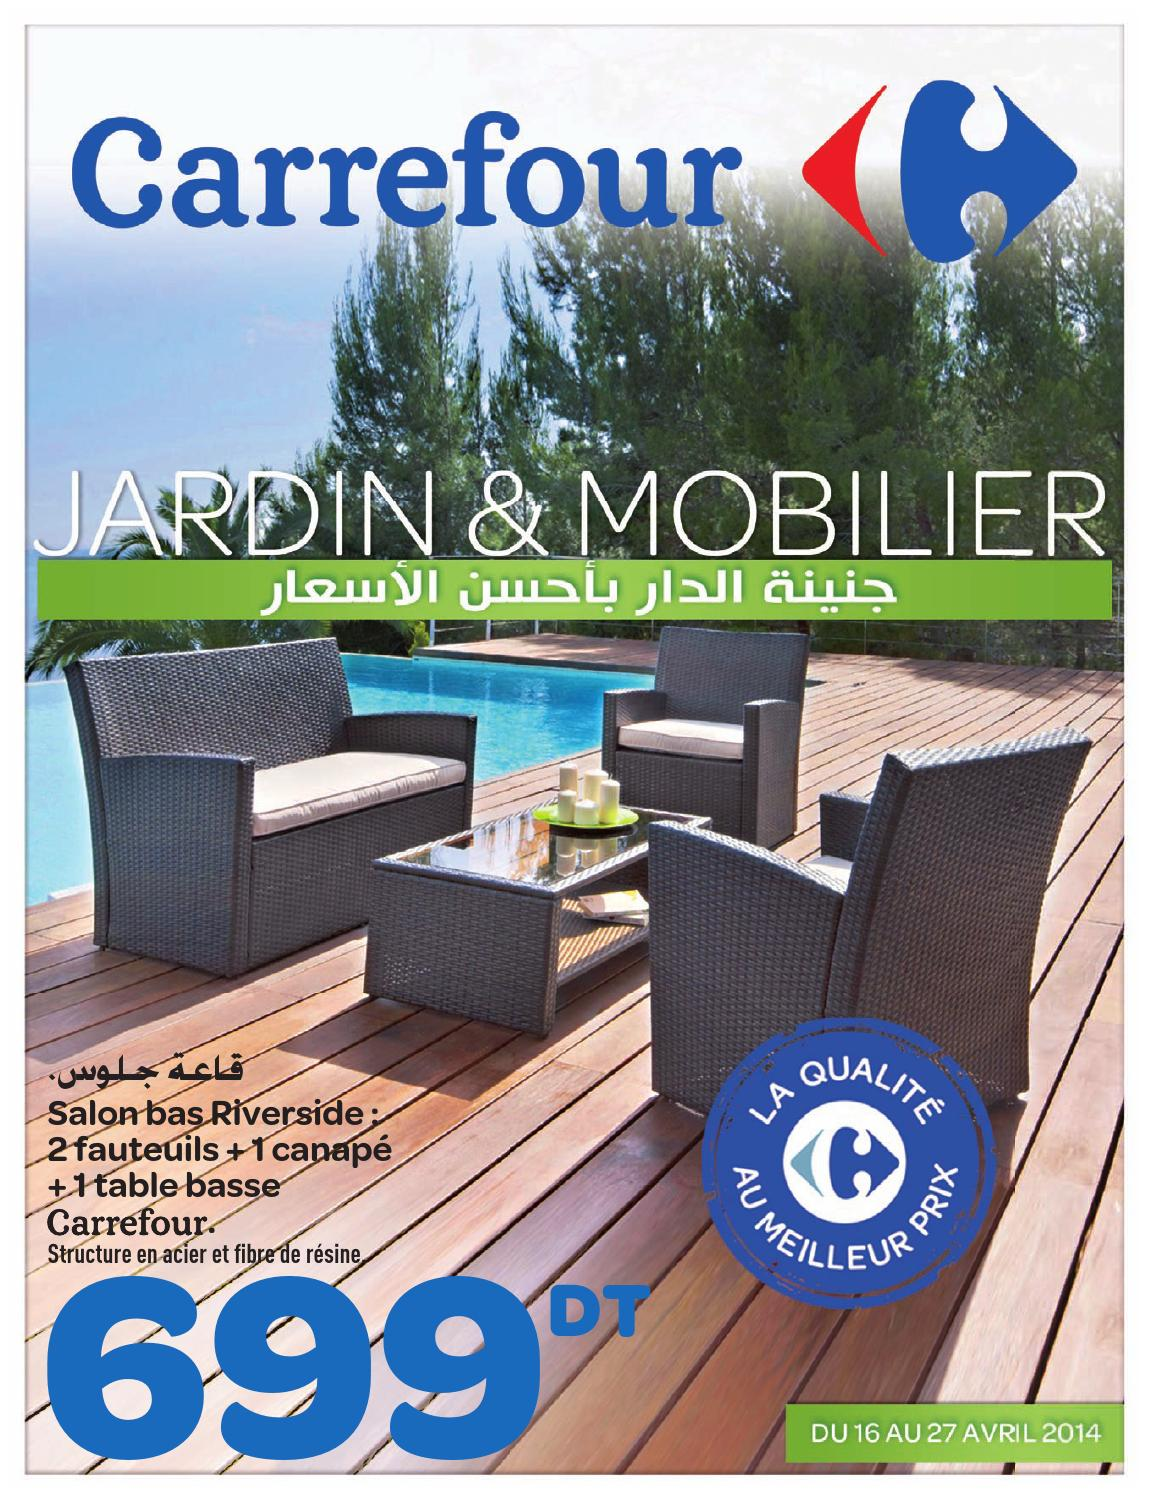 catalogue carrefour jardin et mobilier by carrefour tunisie